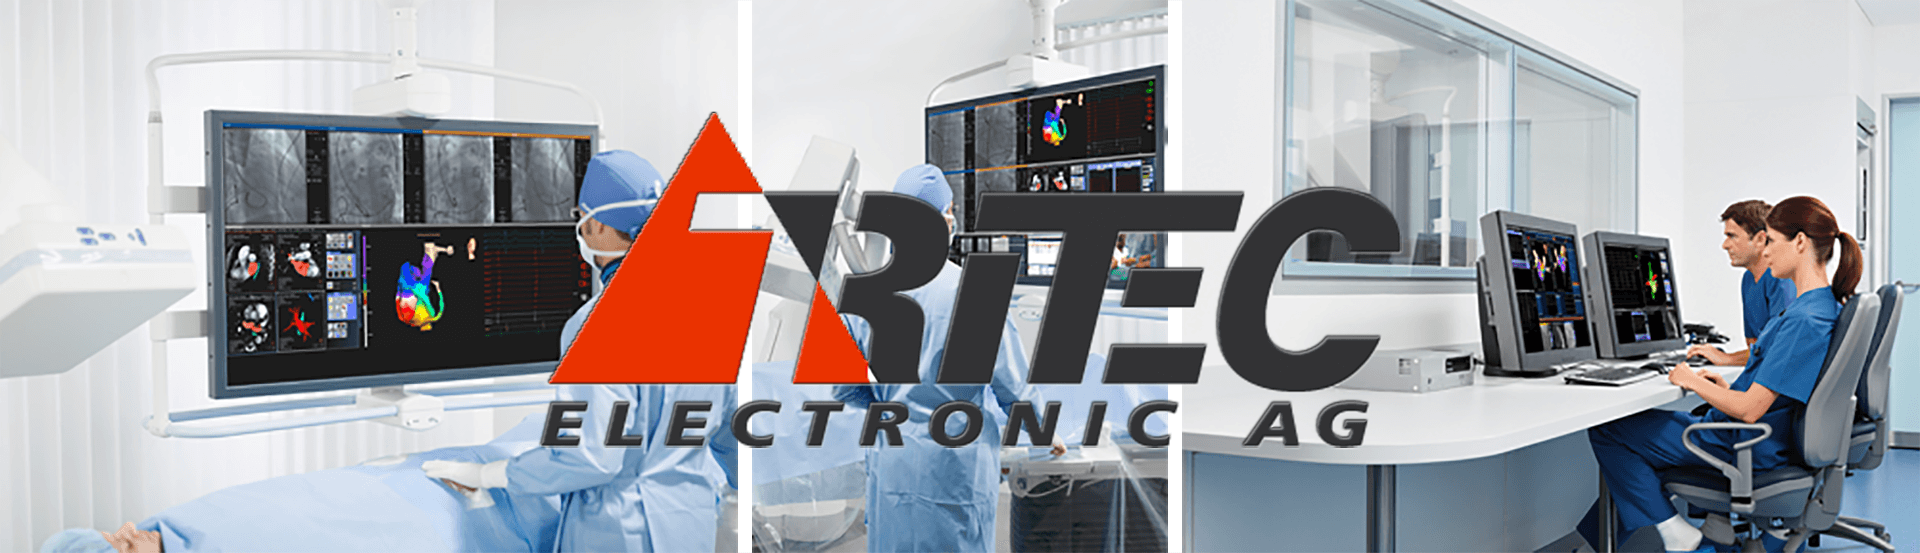 TRITEC Electronic AG